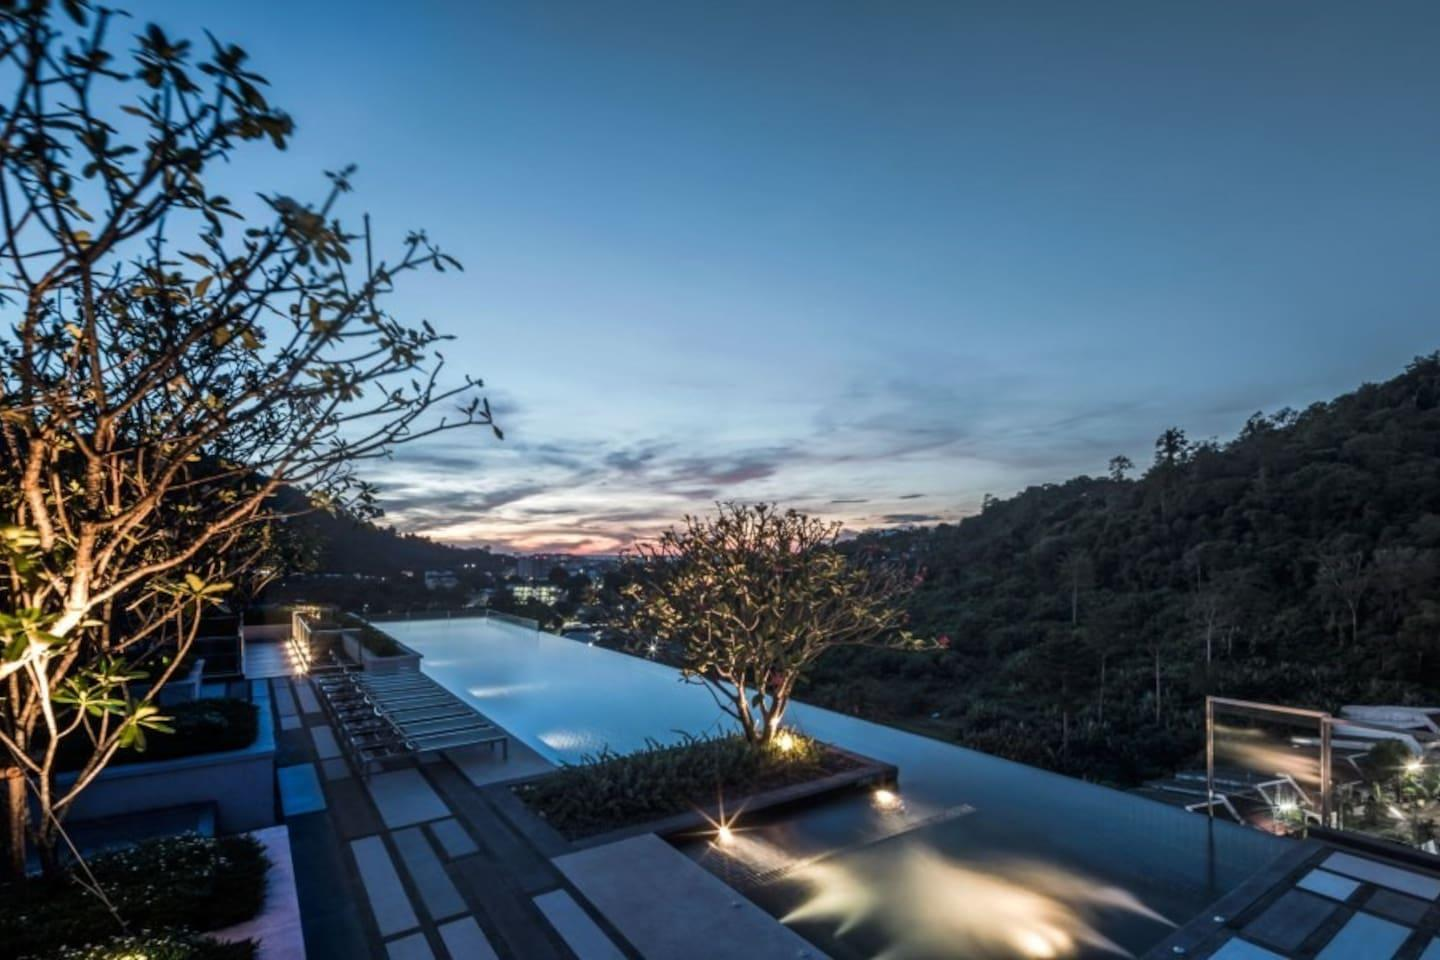 Luxury Room And Roof Top Pool In Phuket Town  H159